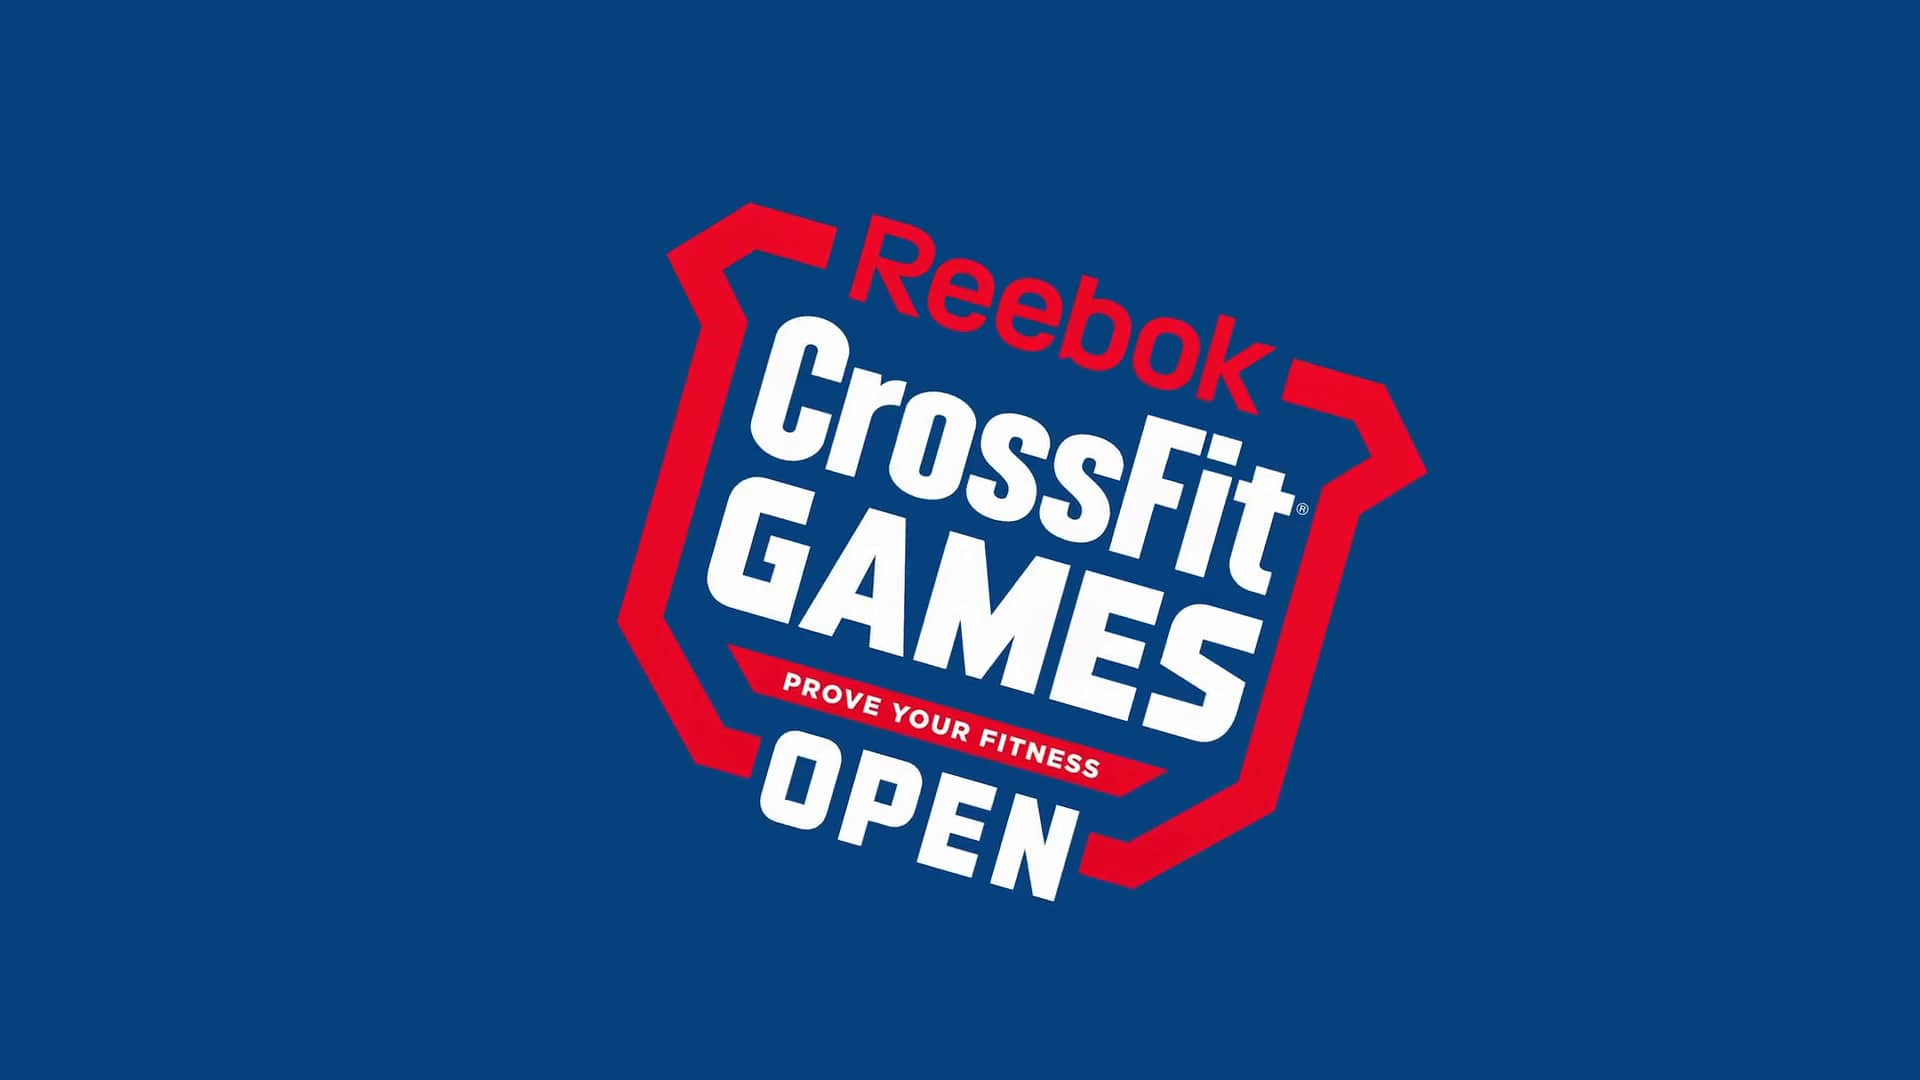 Are you ready??  Sign up here:  https://games.crossfit.com/open